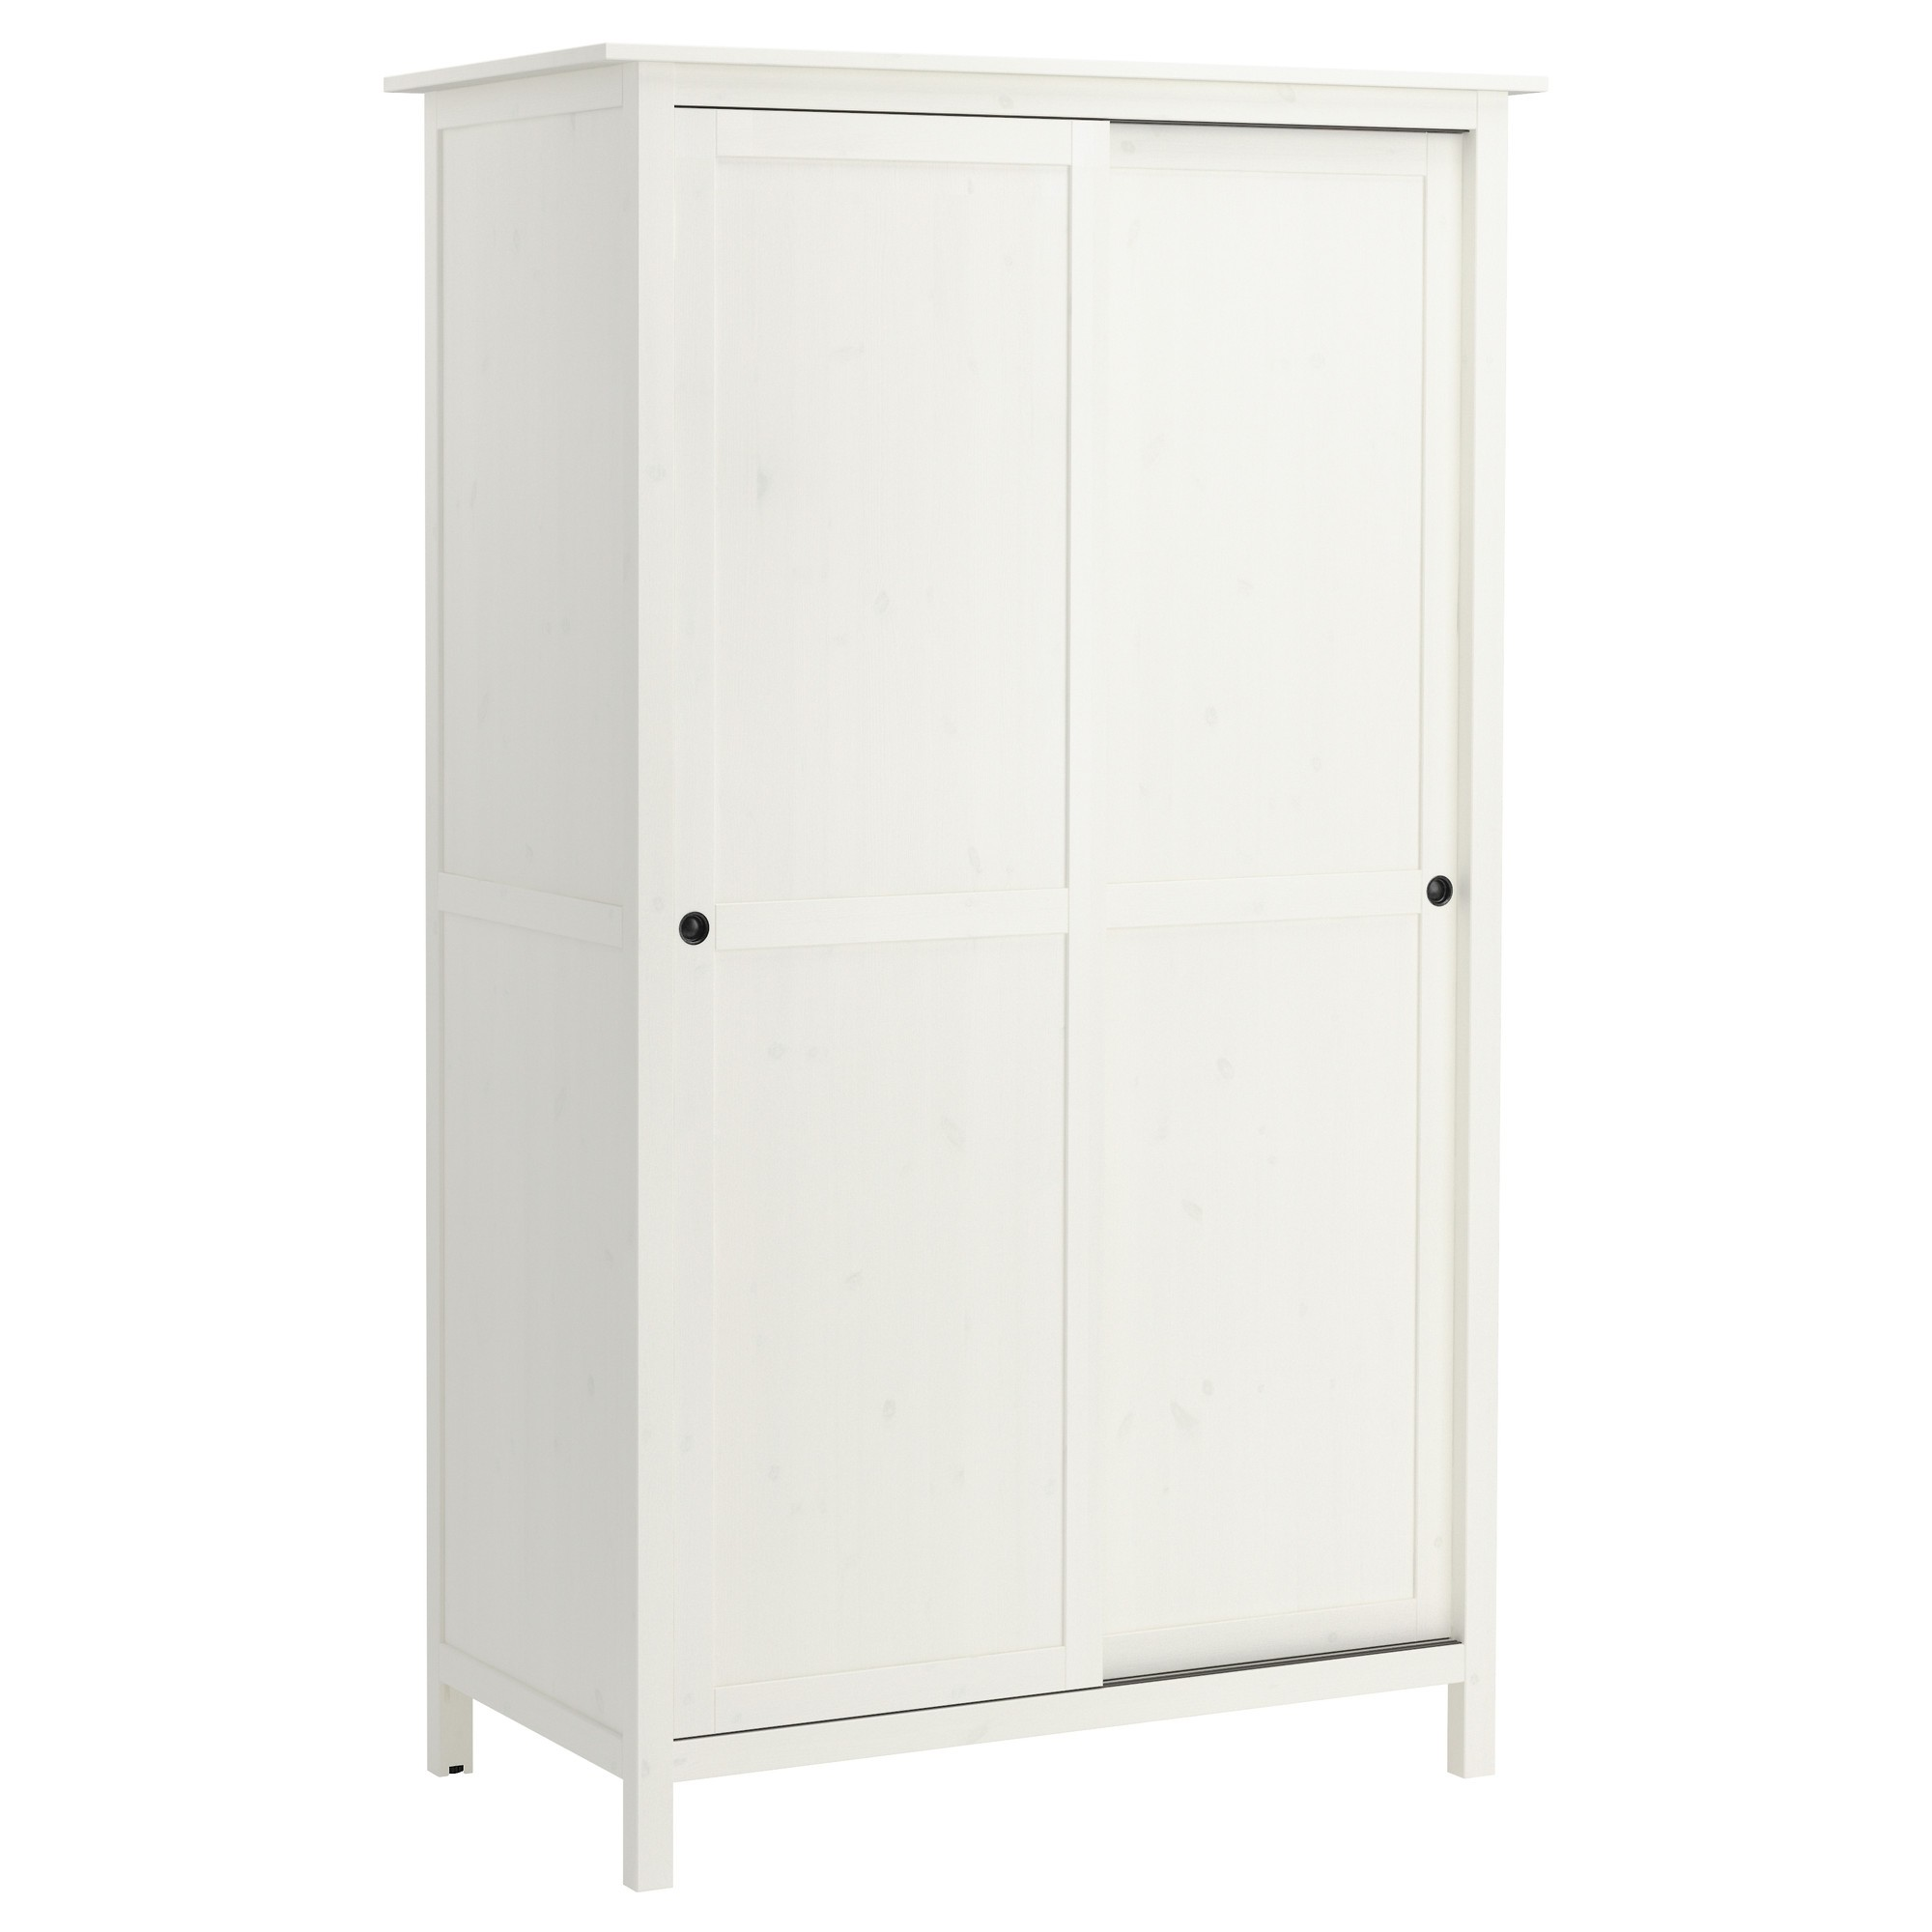 armoire 2 porte coulissante ikea armoire id es de. Black Bedroom Furniture Sets. Home Design Ideas